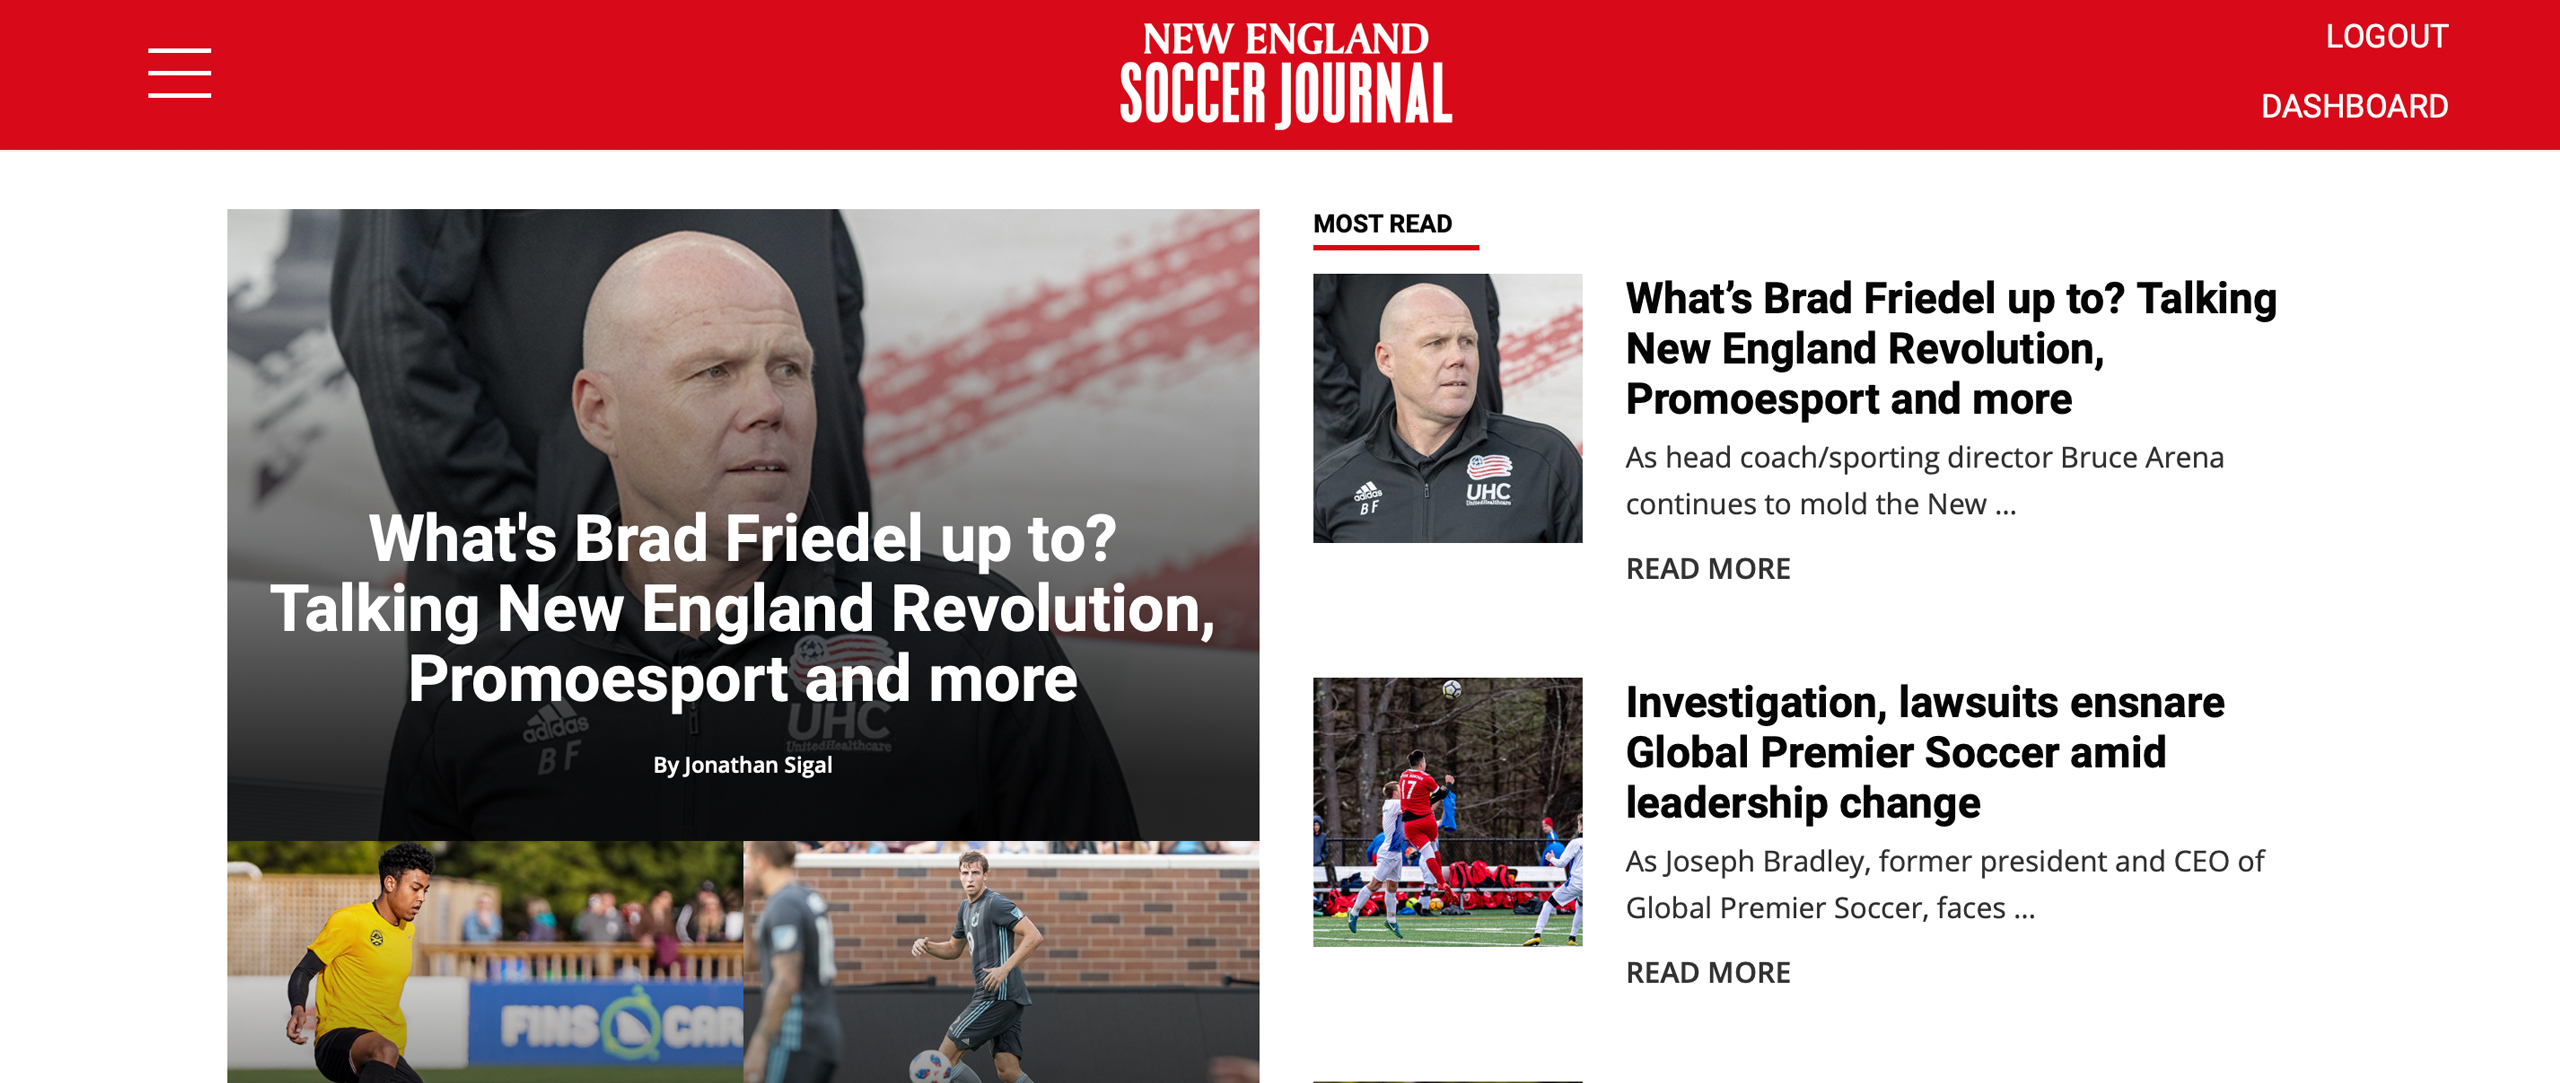 Brad-Friedel-exclusive-with-New-England-Soccer-Journal-talkign-NCE-Soccer-PromoESport